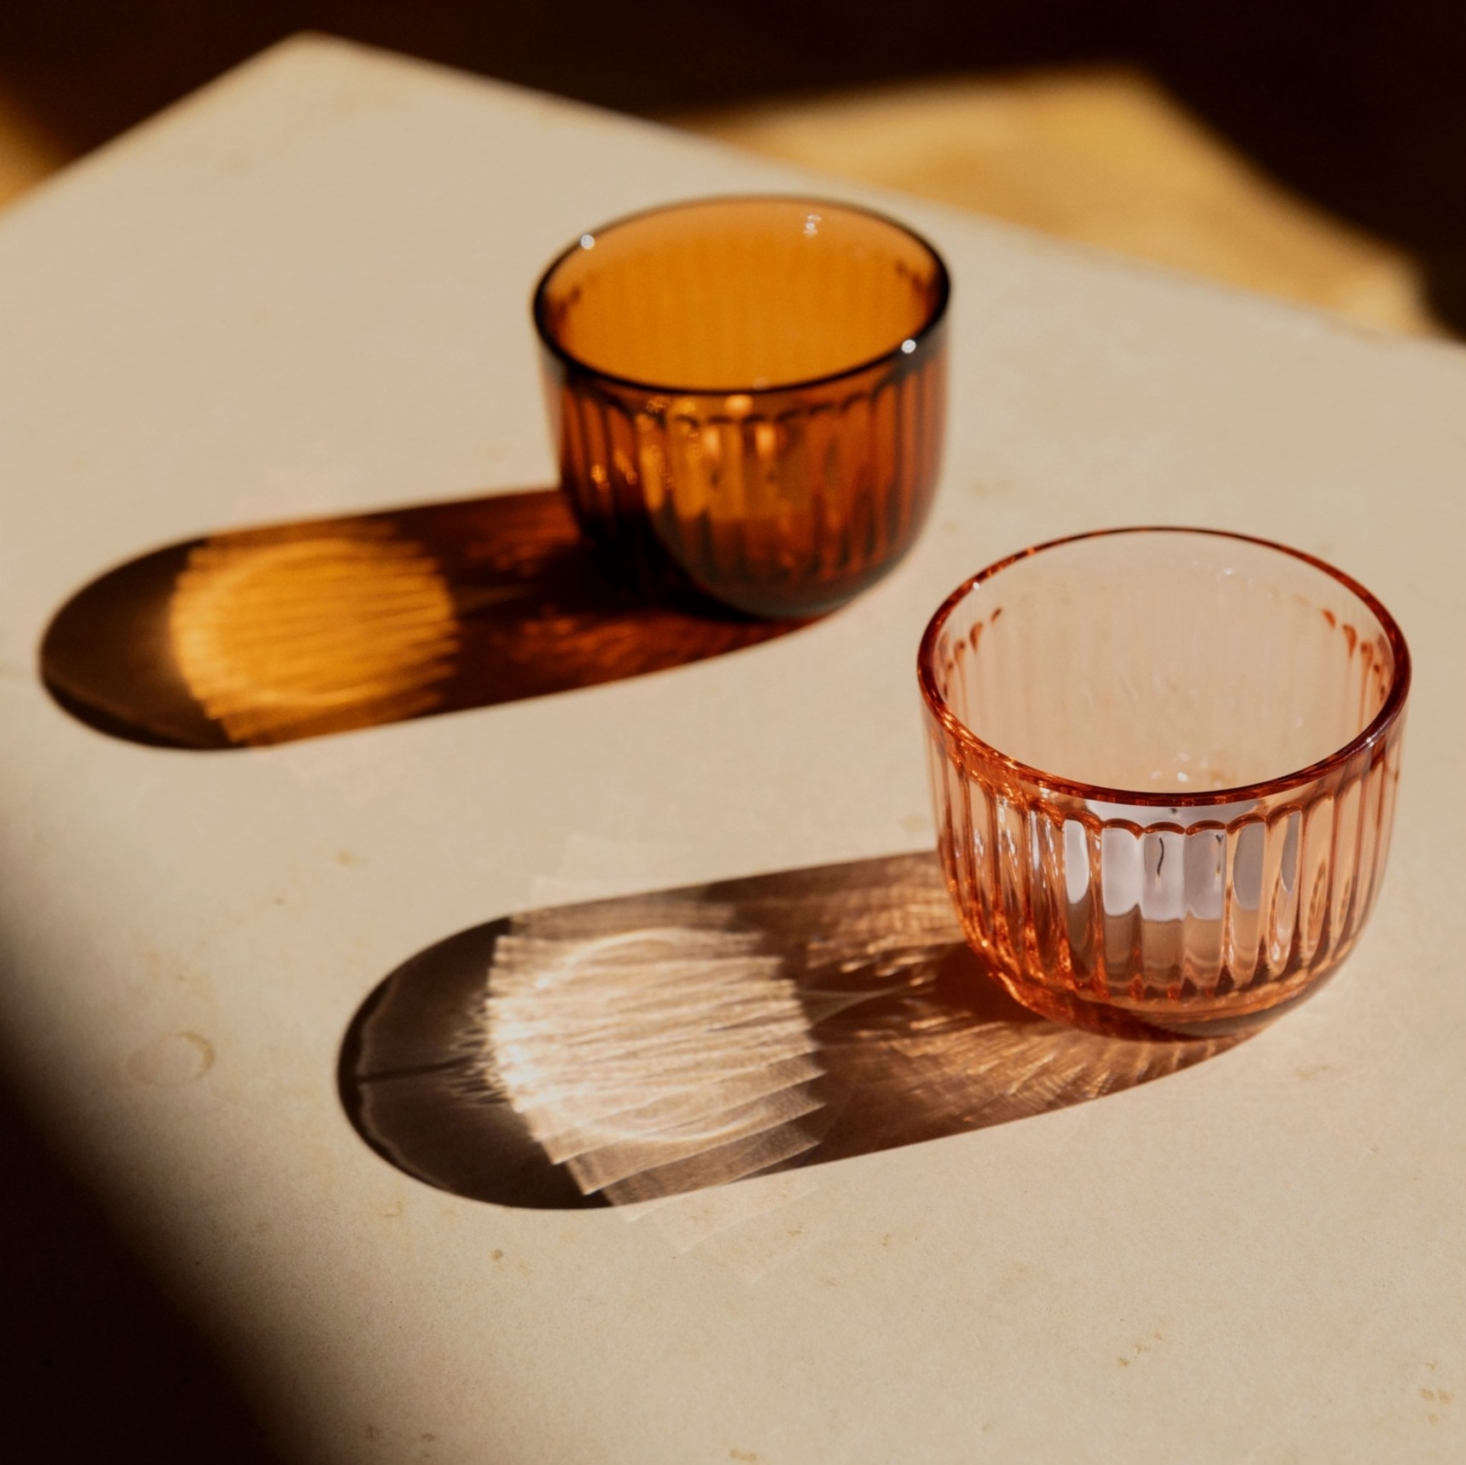 Above Pressed glass: Raami Tea Light Holders in salmon pink are 34.90 for a pair from Iittala.